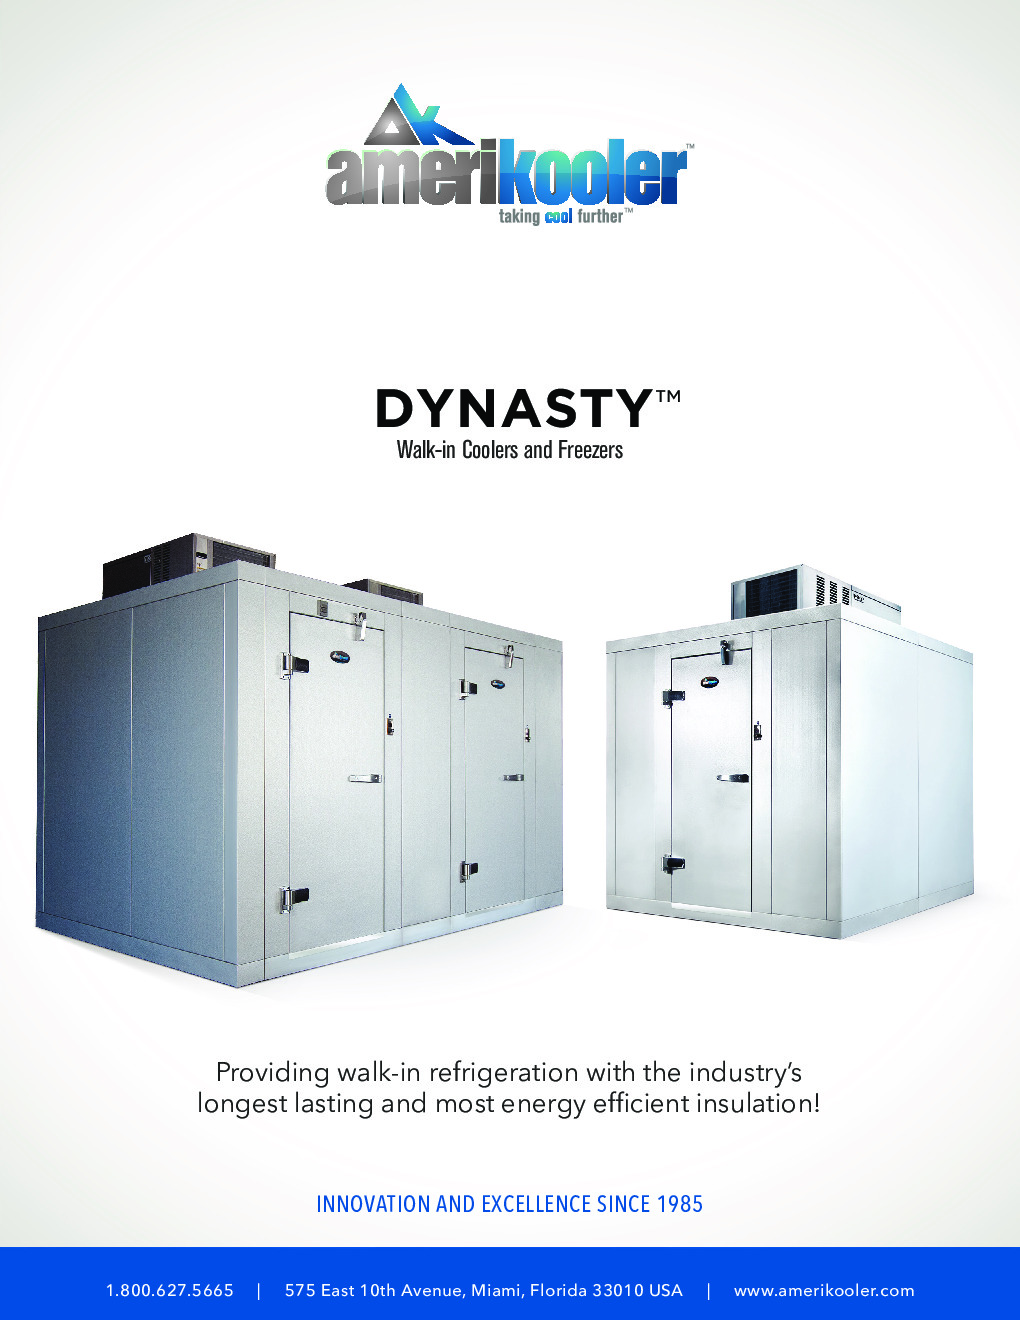 AmeriKooler DW091377N-5/8-RM 9' X 13' Walk-In Cooler, 8' L Cooler without Floor and 5' L Freezer, Remote